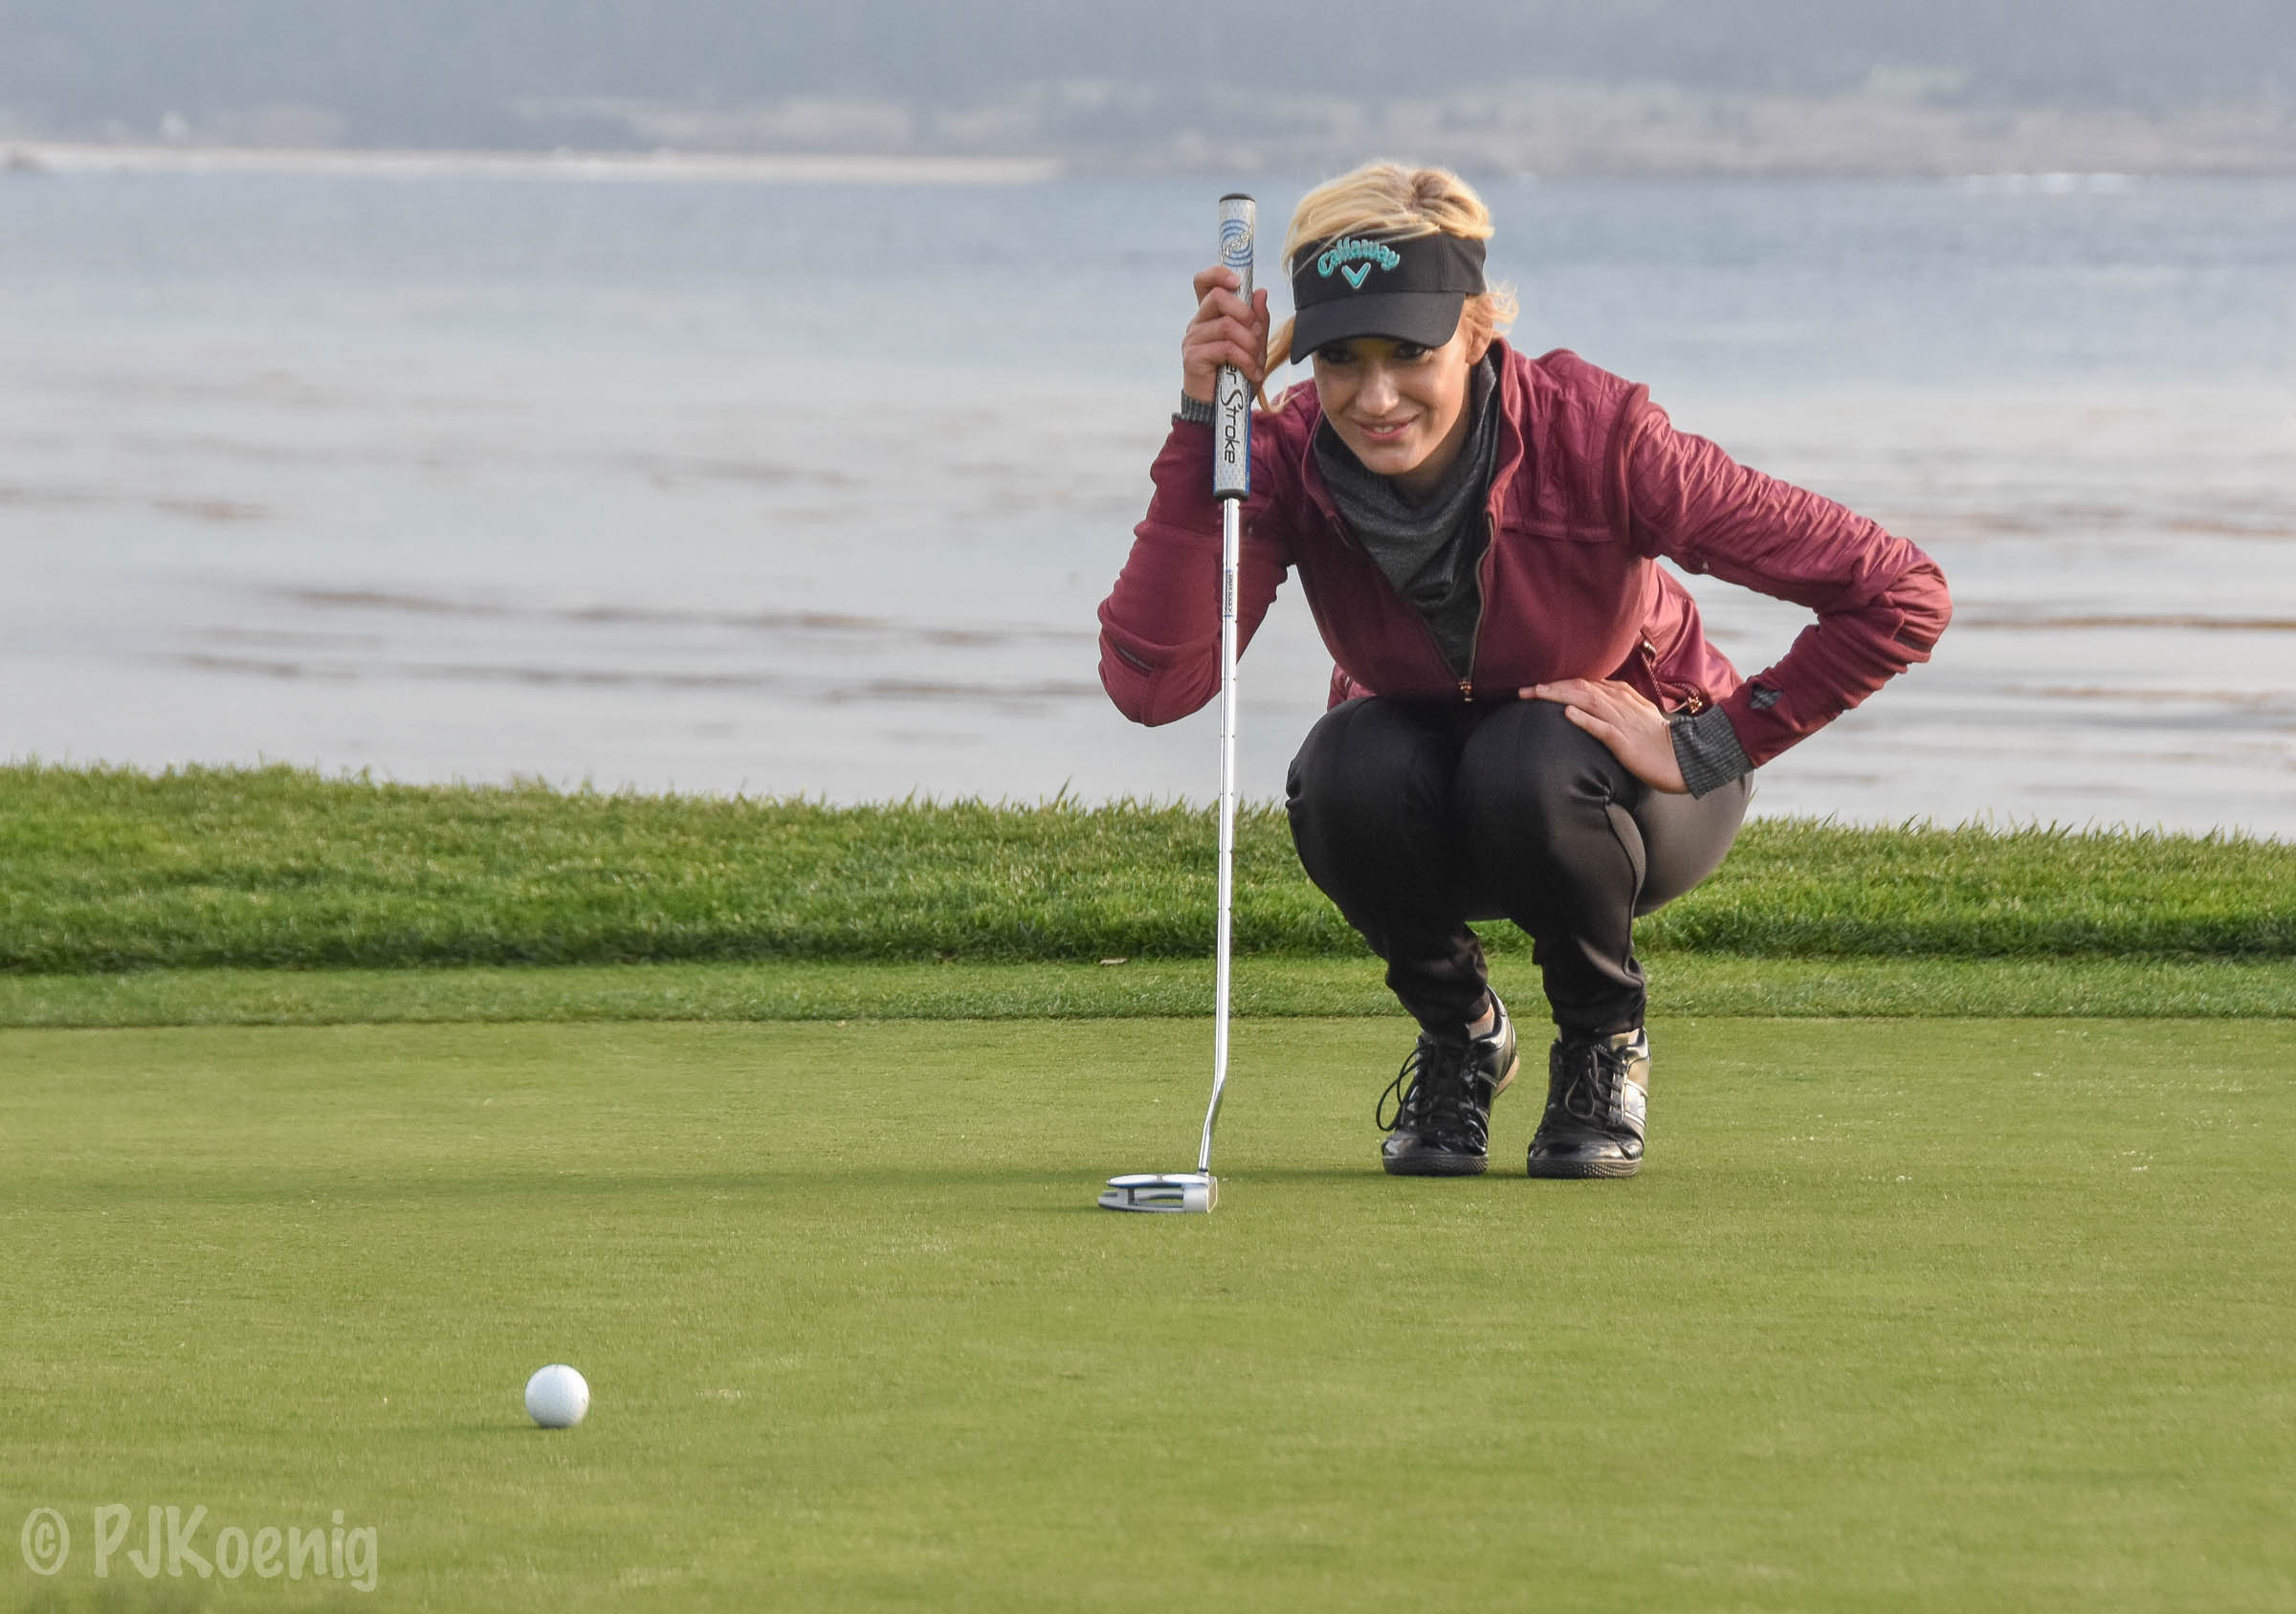 Reading putts at Pebble Beach is fun.